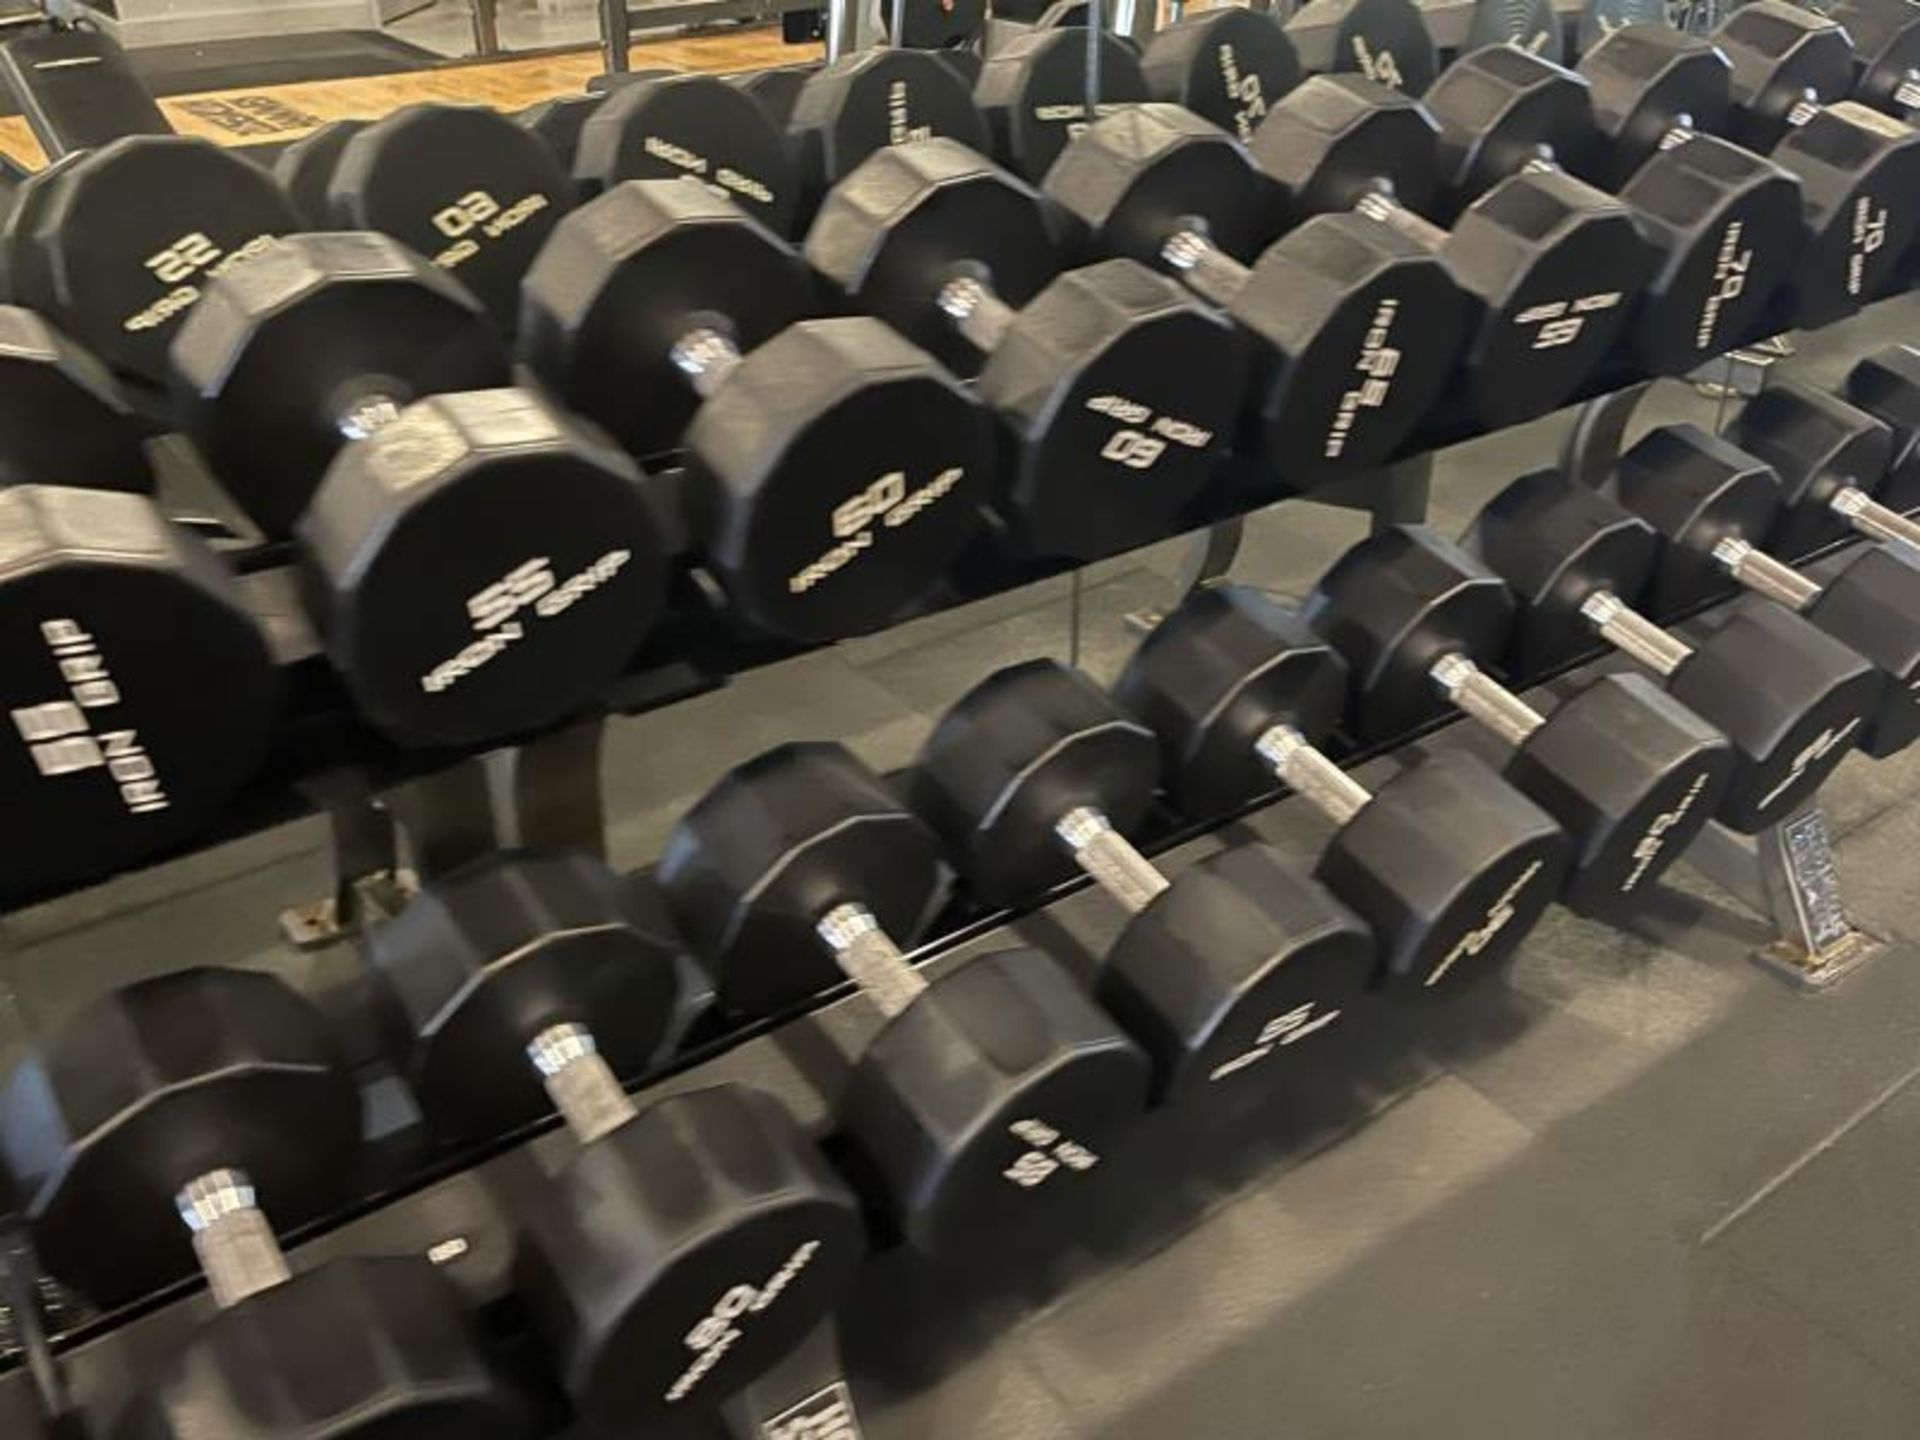 Iron Grip Dumbbell 5-100# with Hammer Strength 2 Tier Racks - Image 6 of 9